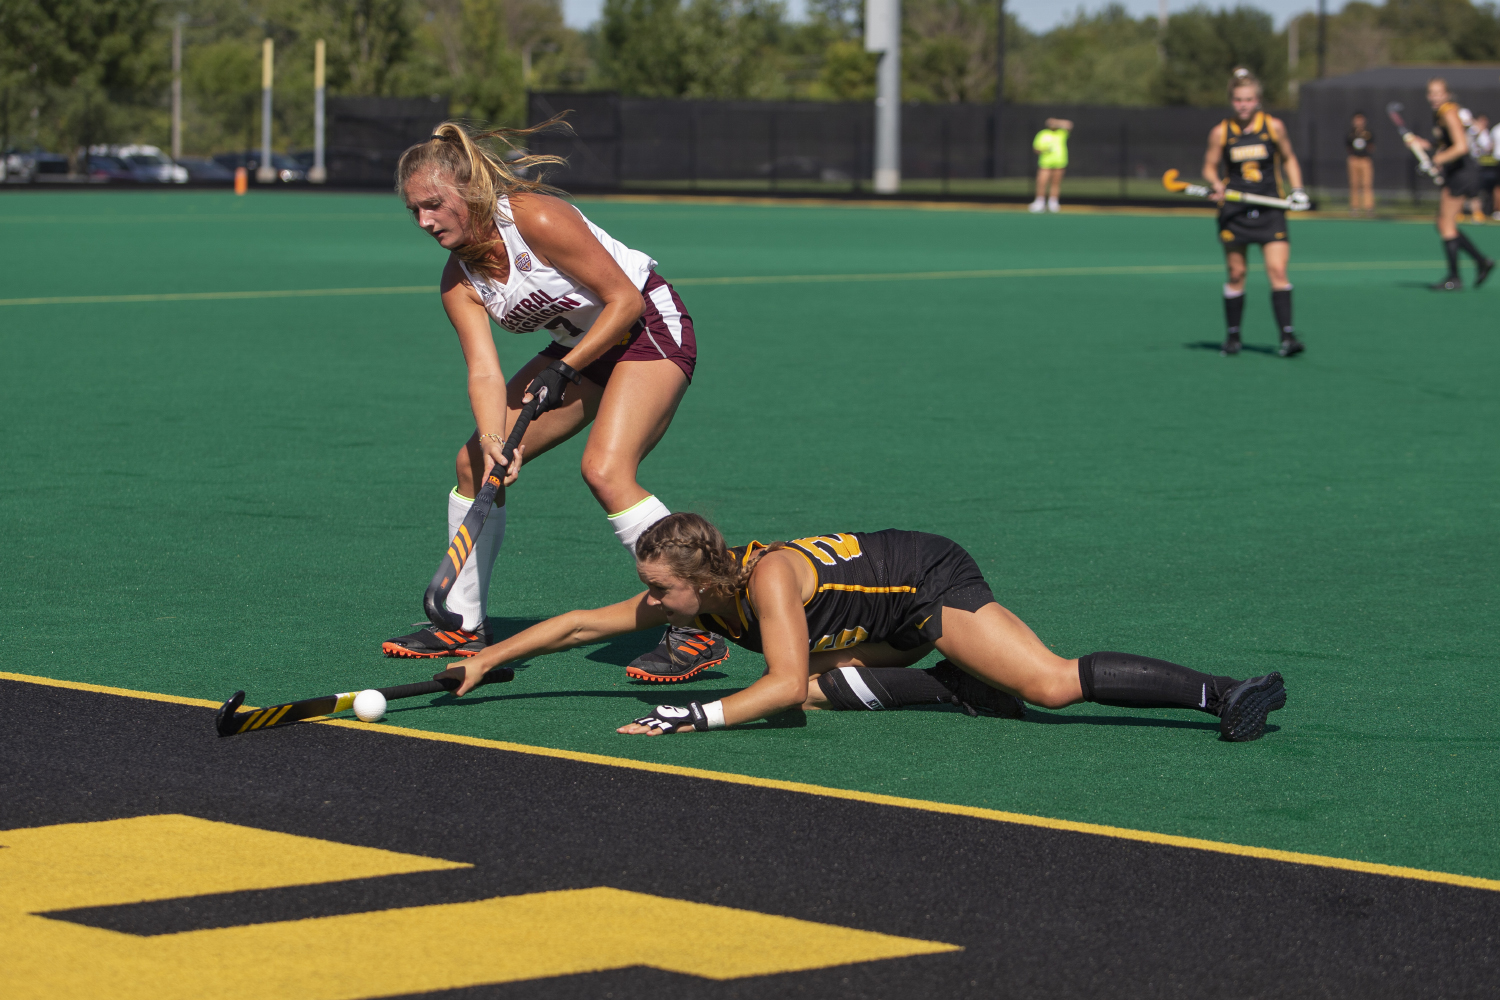 Iowa+forward+Maddy+Murphy+tries+to+keep+the+ball+inside+the+sideline+during+a+field+hockey+game+between+Iowa+and+Central+Michigan+at+Grant+Field+on+Friday%2C+September+6%2C+2019.+The+Hawkeyes+defeated+the+Chippewas%2C+11-0.